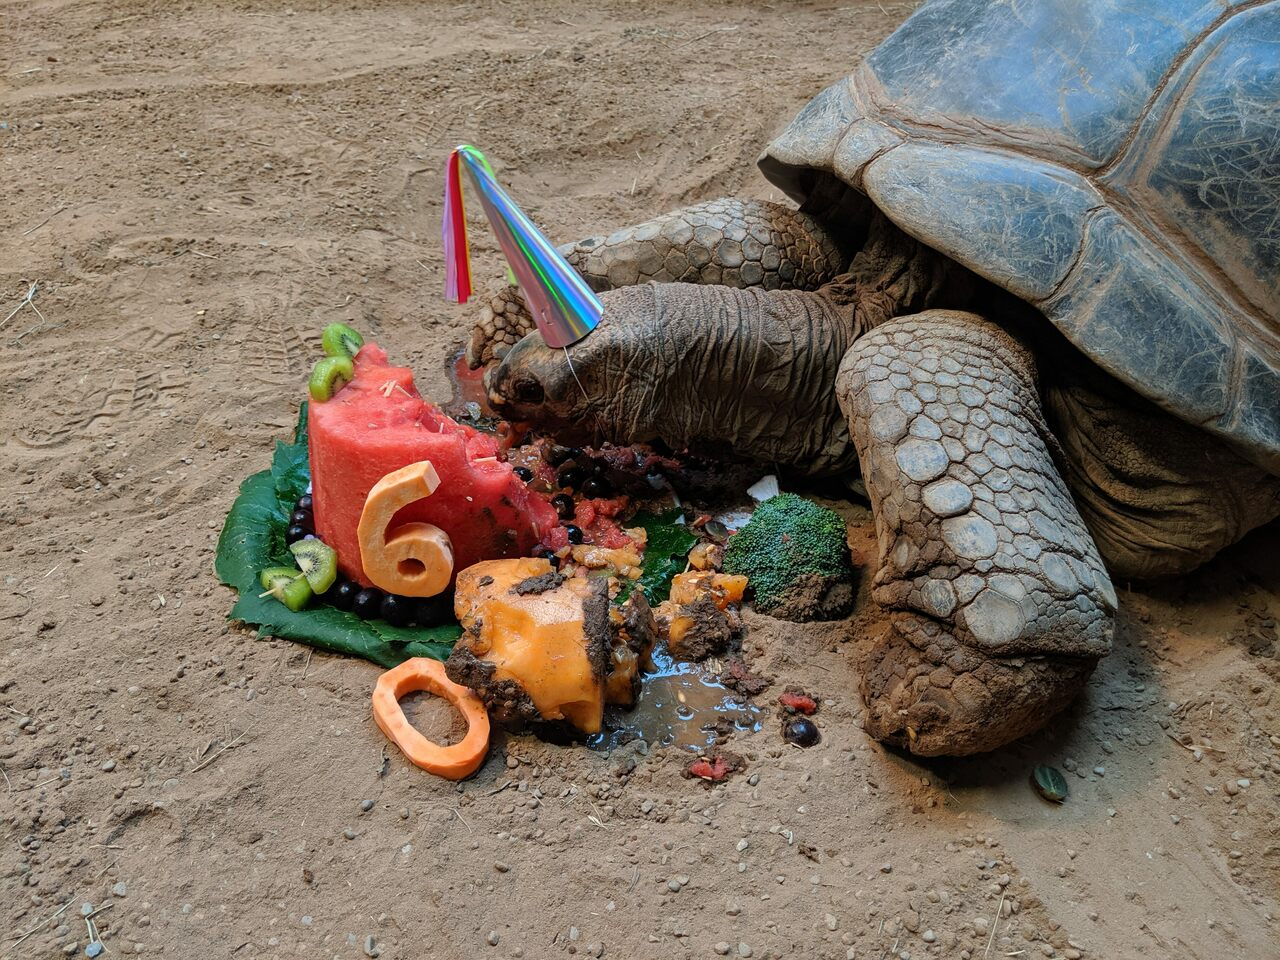 Henry, an Aldabra tortoise, demolished a fruit-and-veggie cake for his 60th birthday.